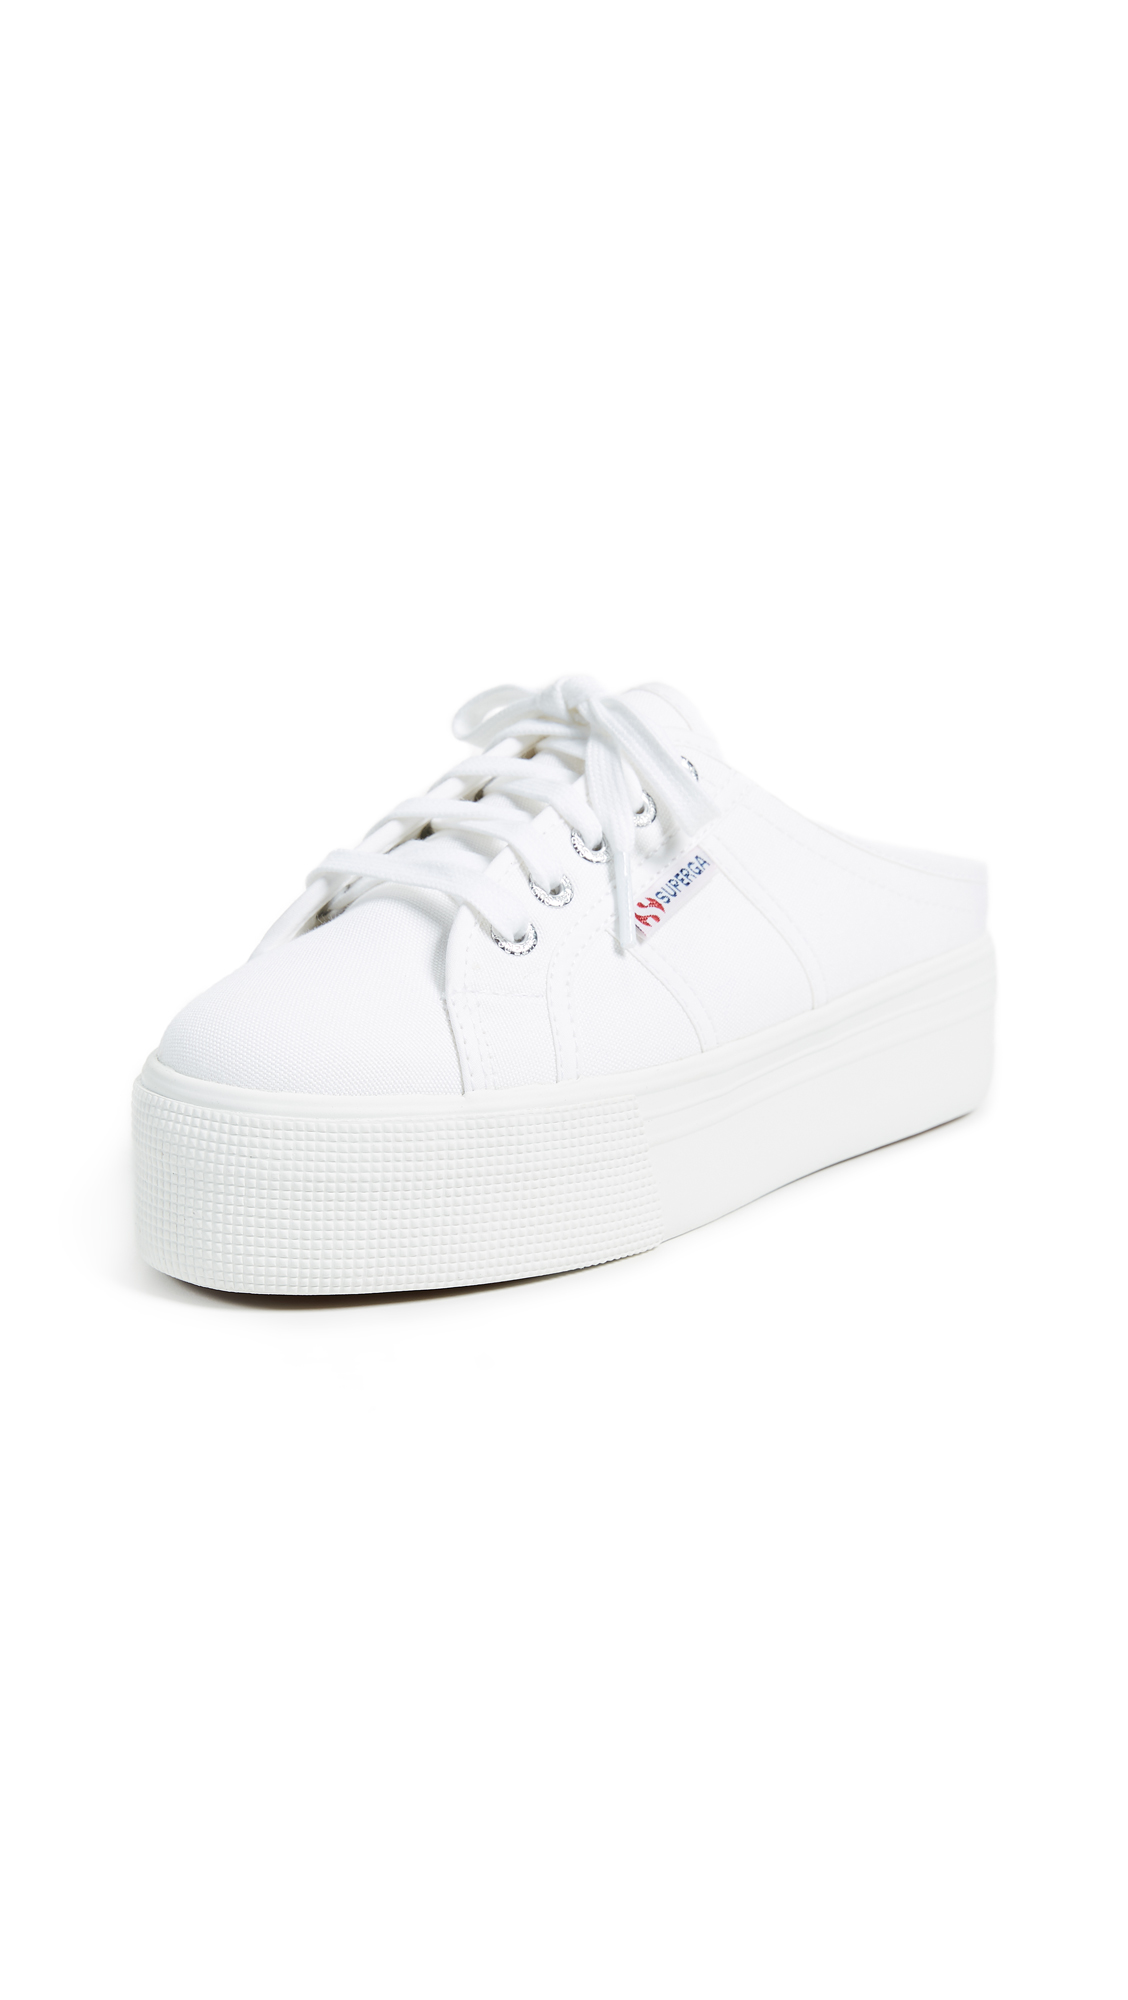 Superga 2284 C0TW Platform Sneakers - White